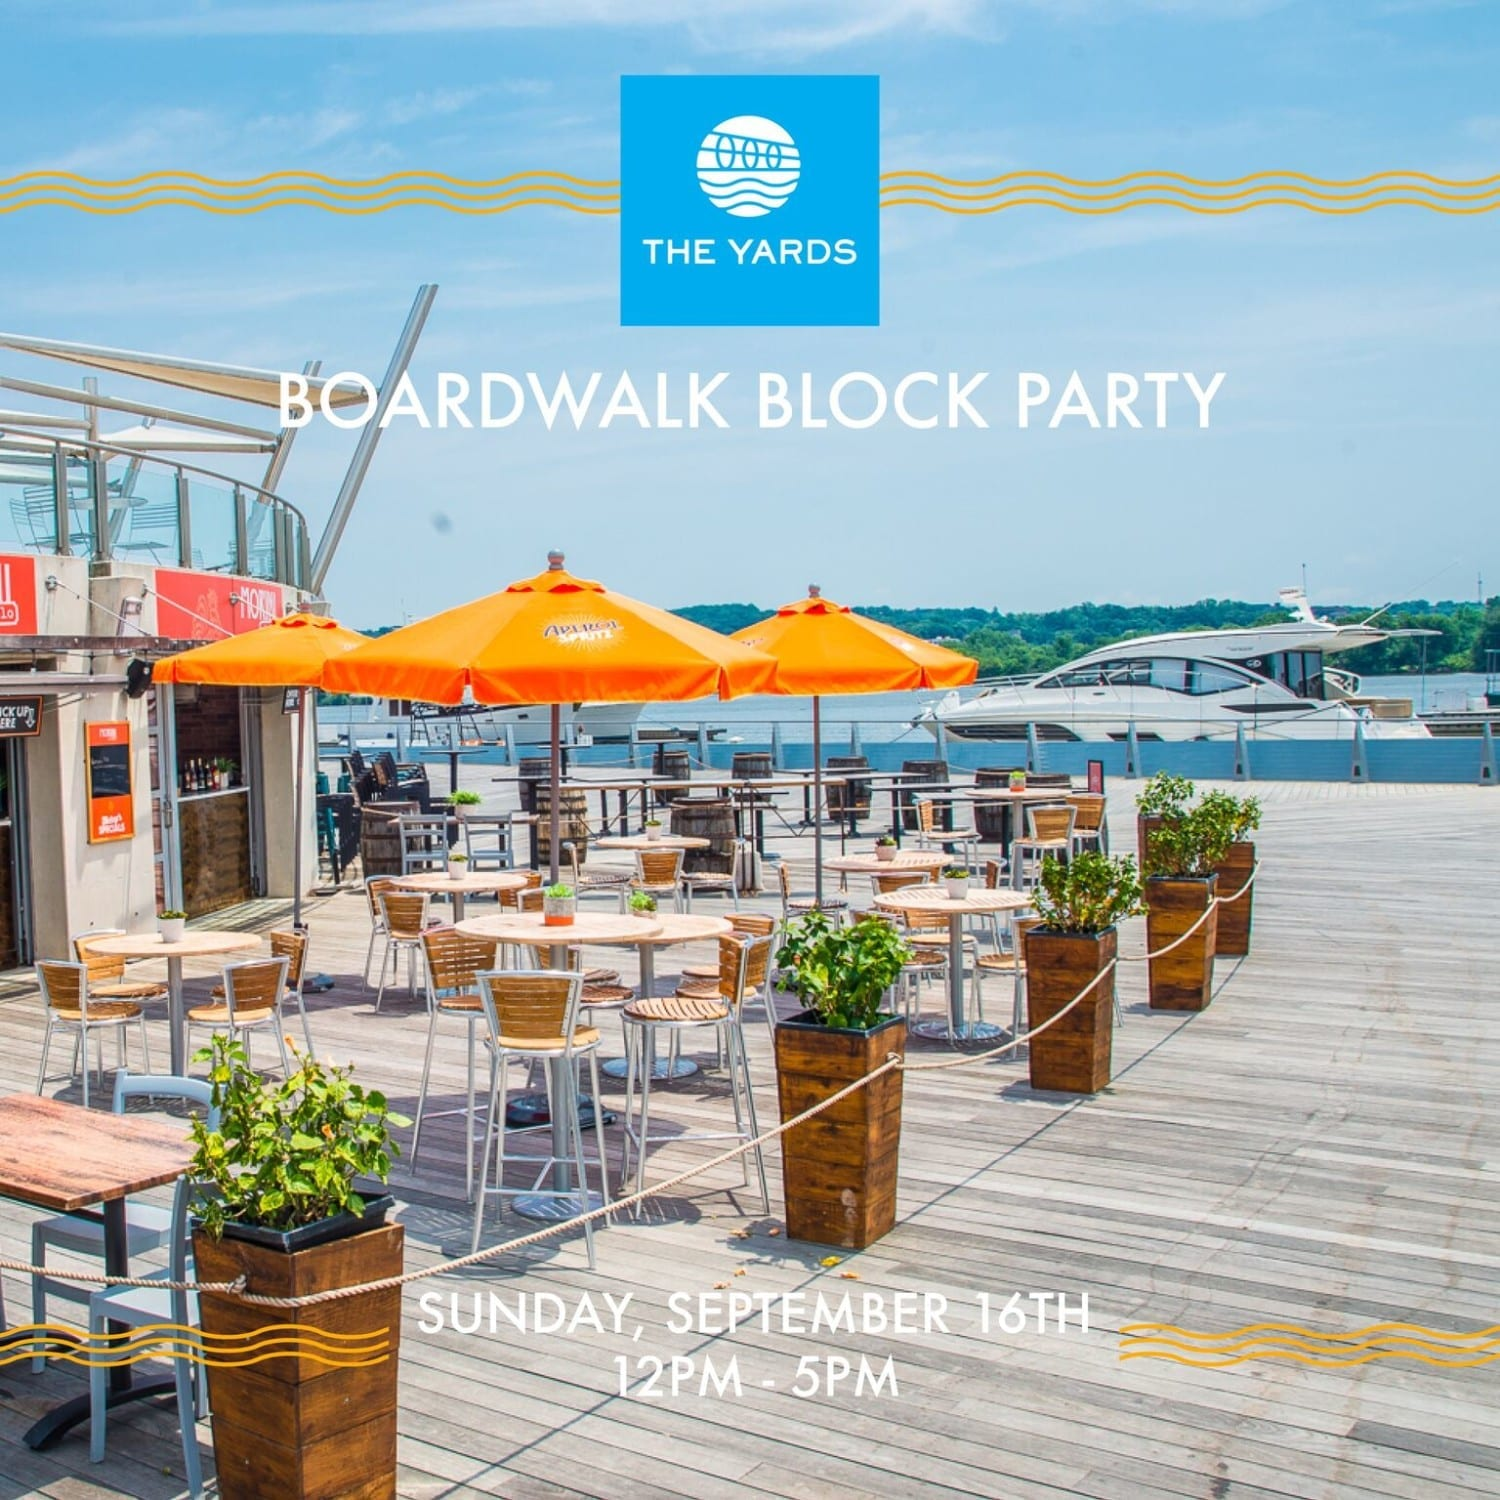 Flyer for Boardwalk Block Party